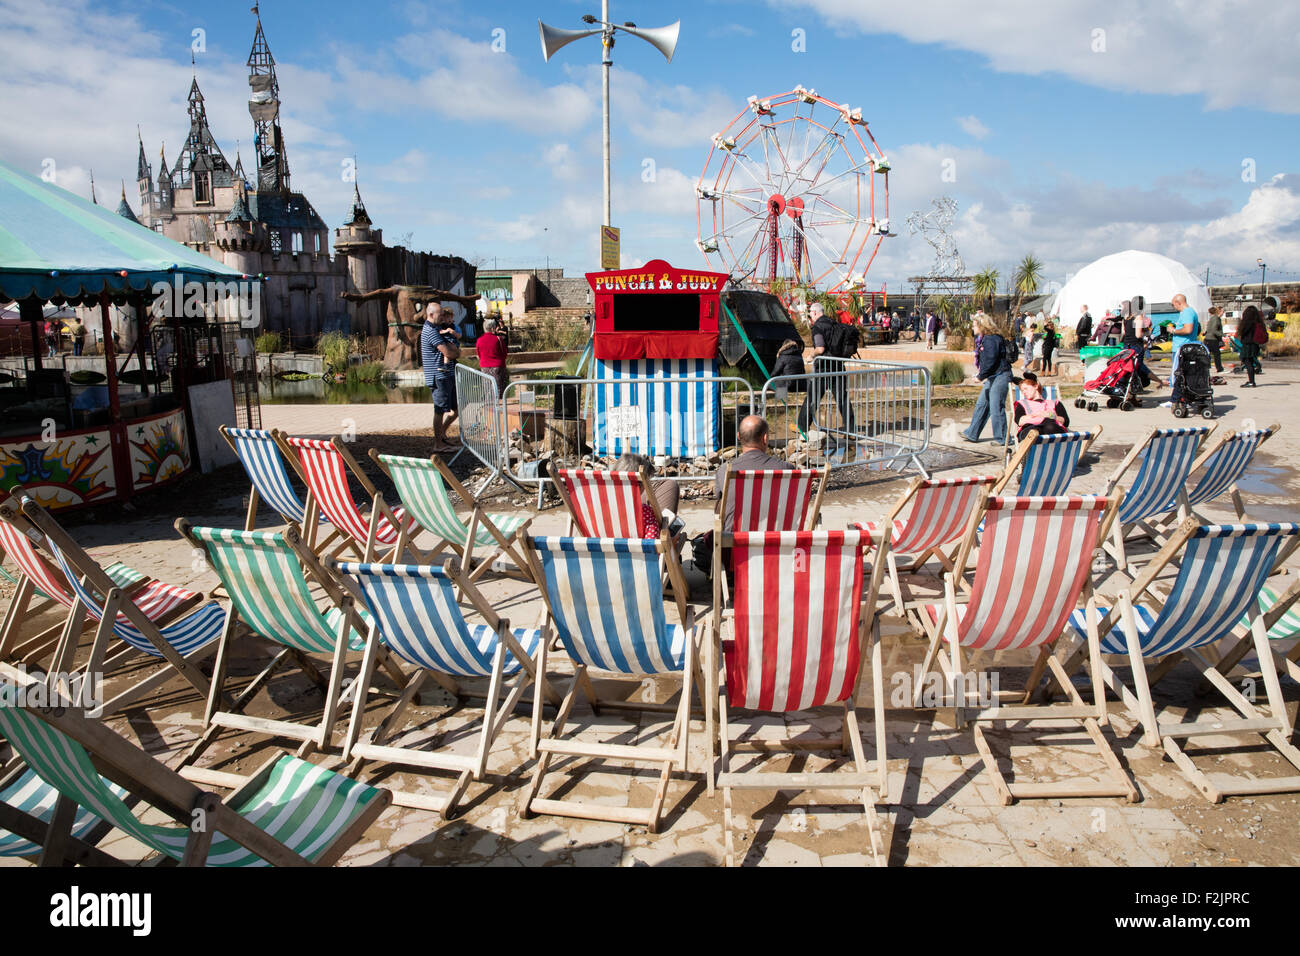 Punch and Judy show with an audience of two at Banksy's Dismaland in Weston super Mare - Stock Image